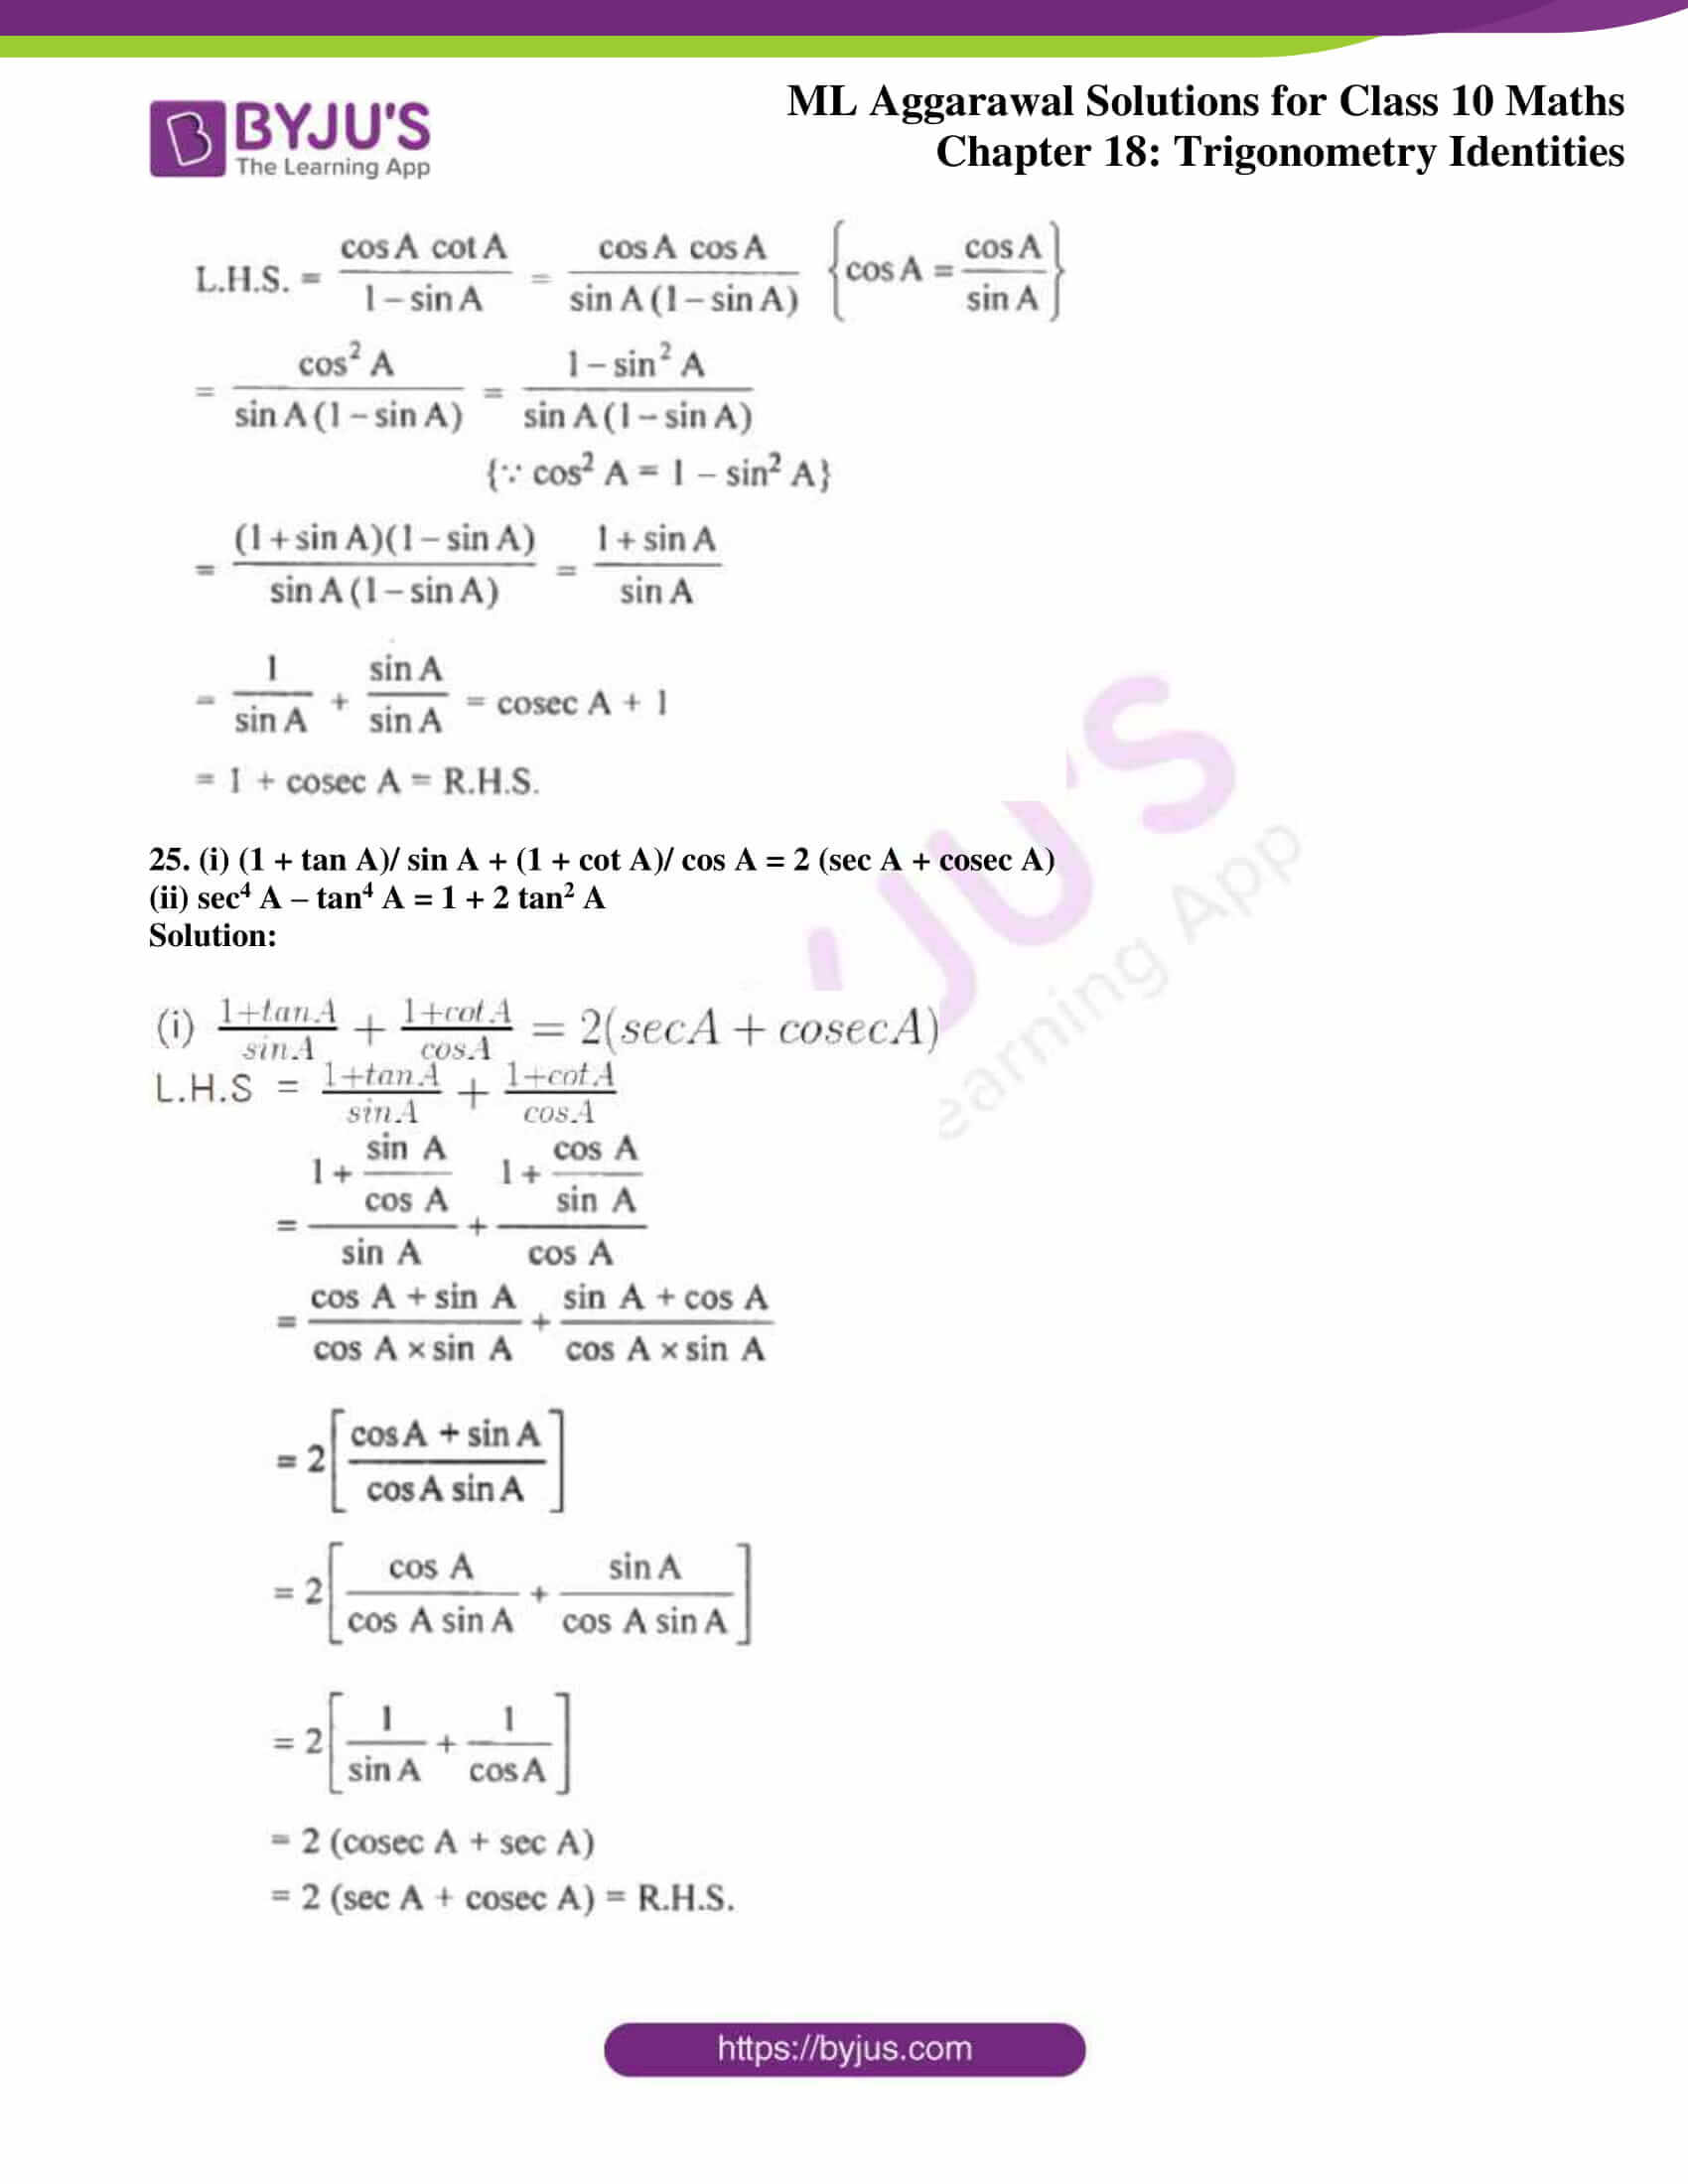 ml aggarwal solutions for class 10 maths chapter 18 18